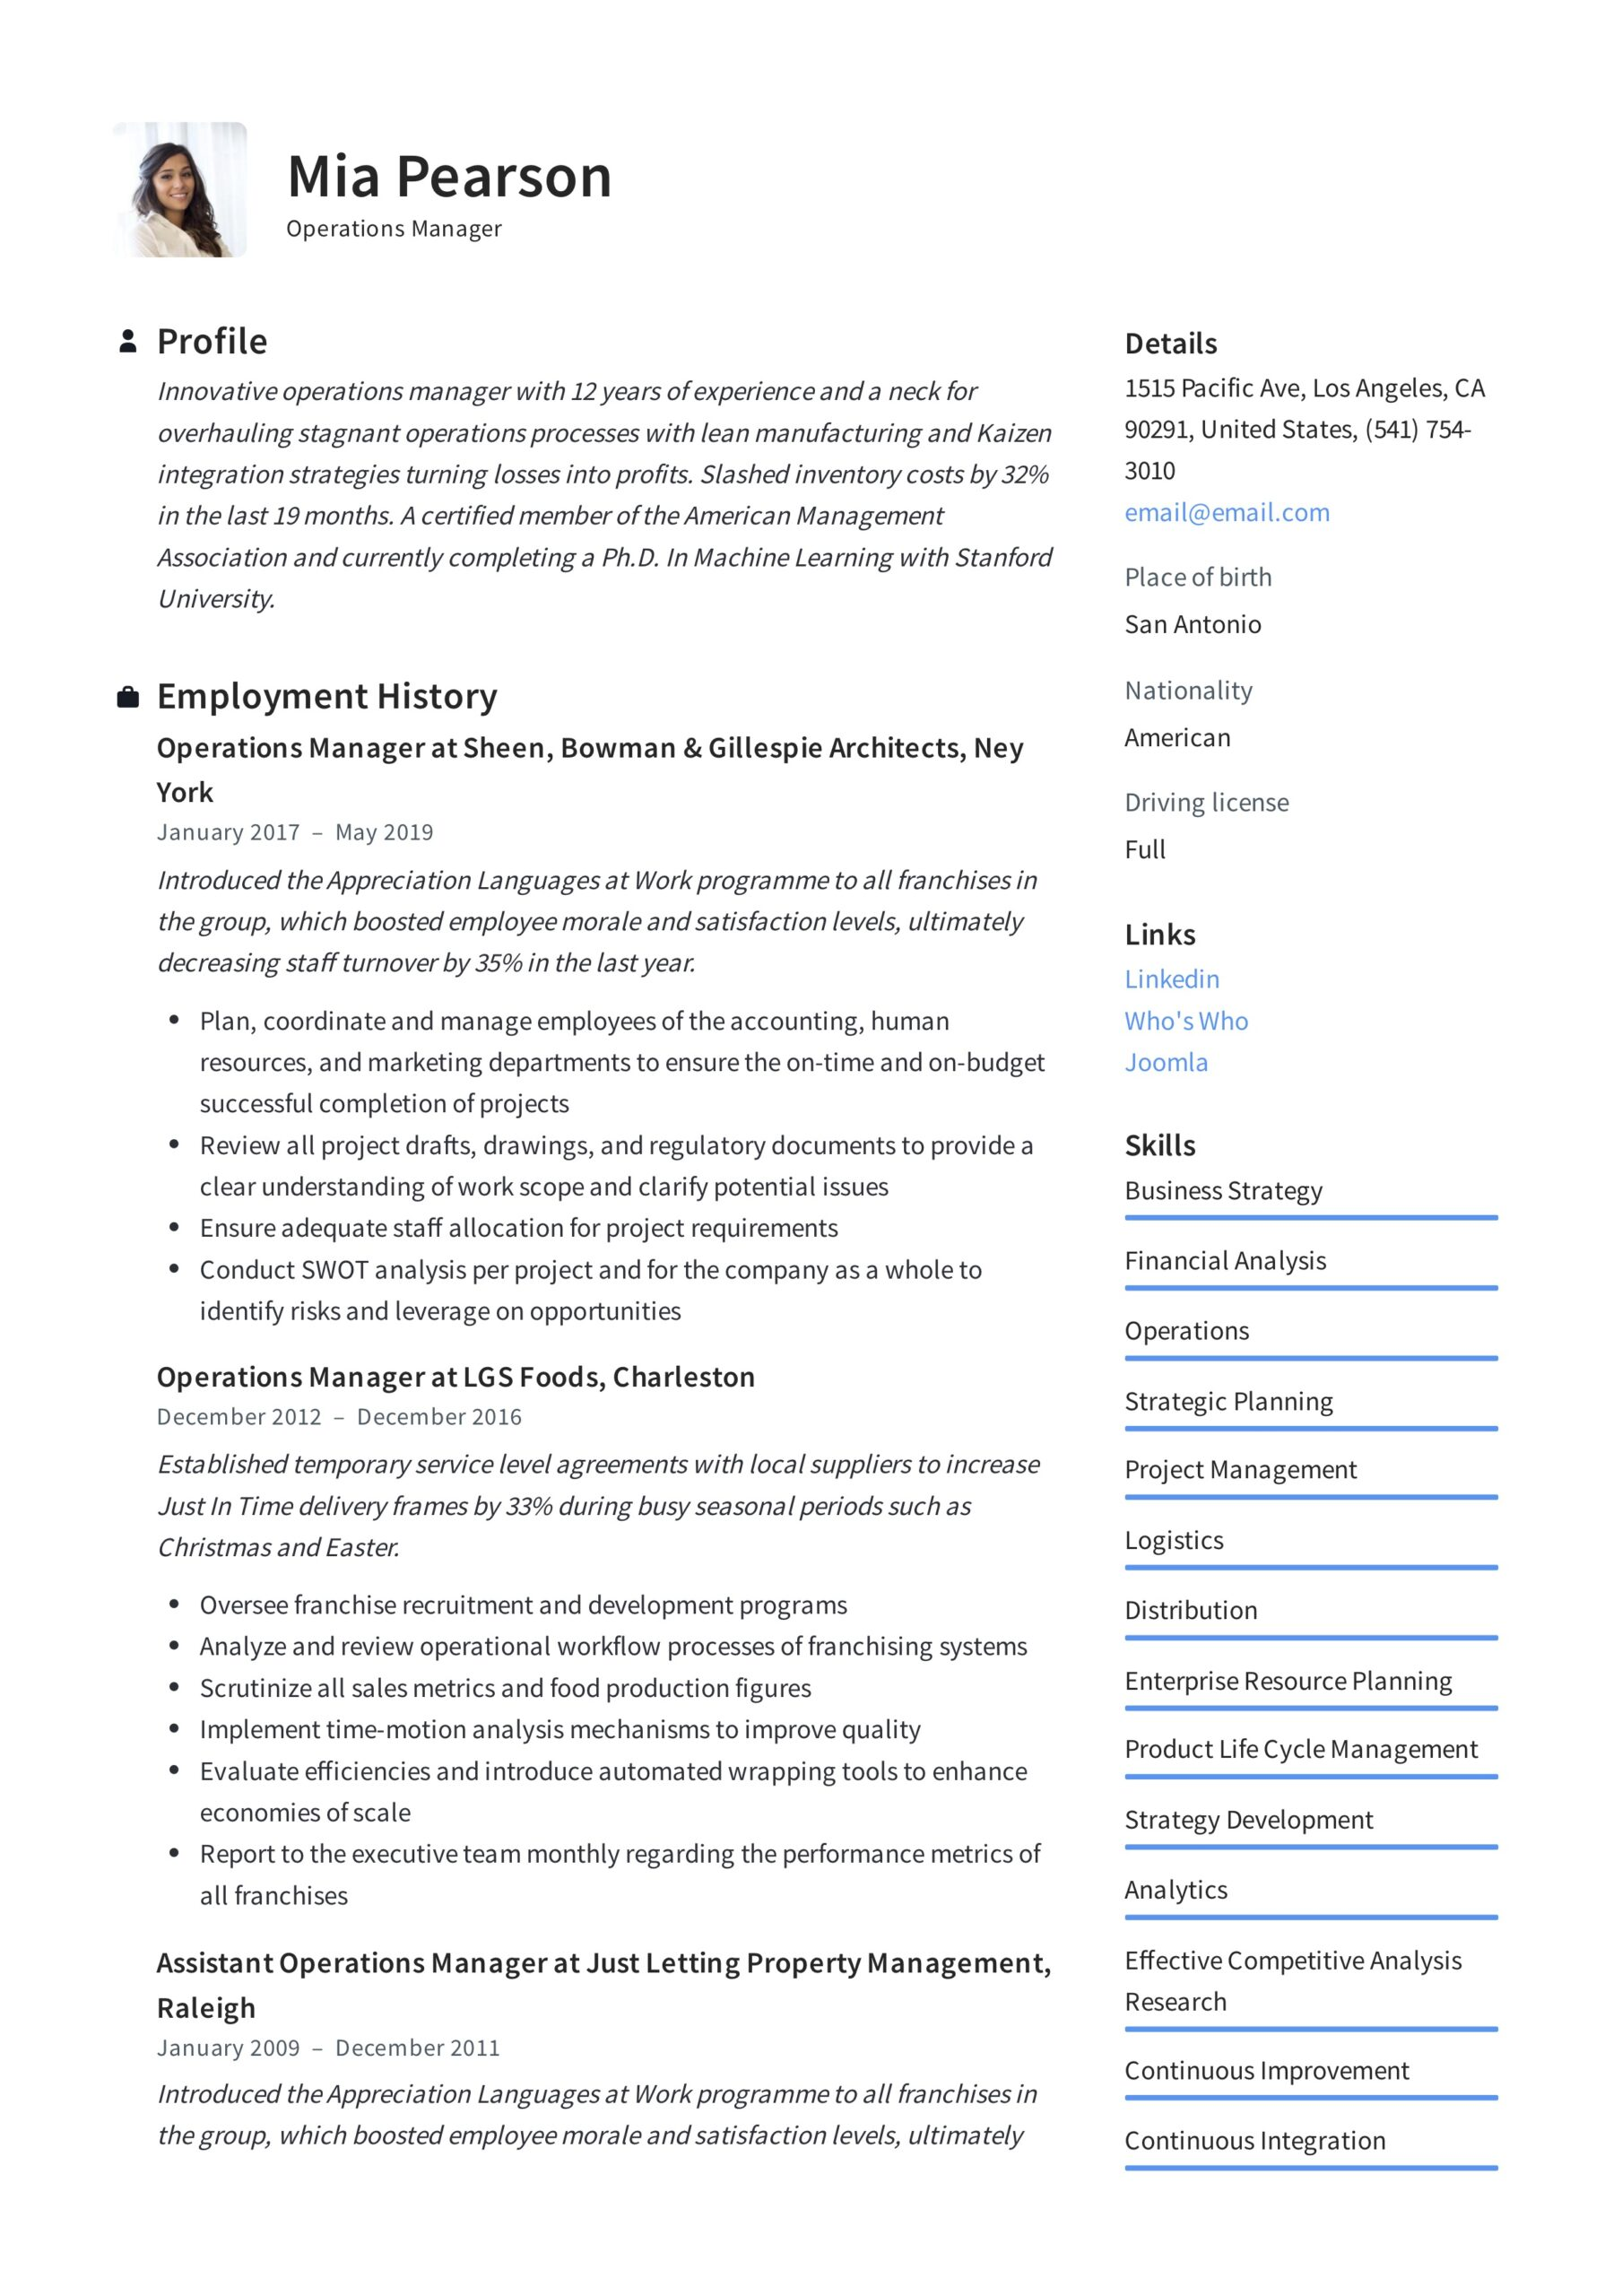 operations manager resume writing guide examples pdf director of example vice president Resume Director Of Operations Resume Examples